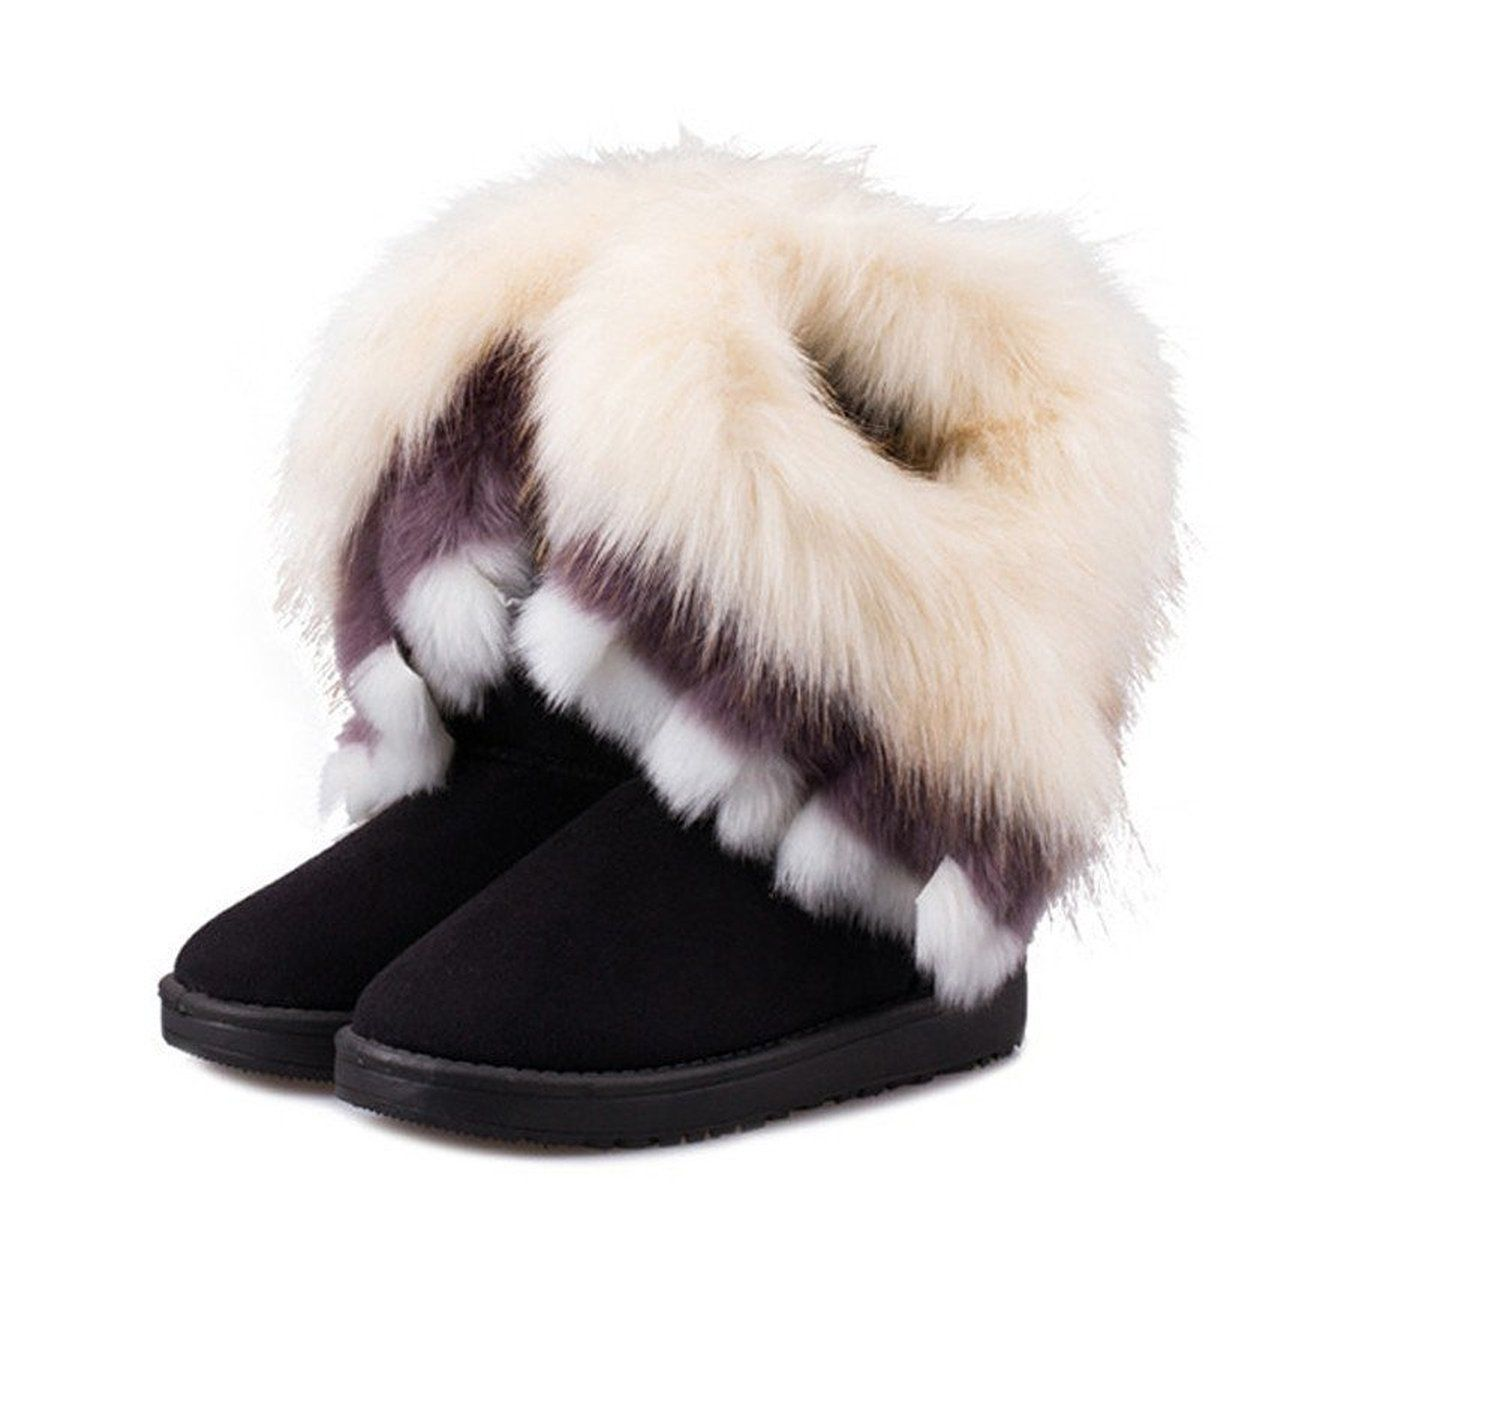 fbb7cca6f6c4e Womens Winter Suede (leather) Snow Ankle Boots Faux Fur Flat Shoes ...